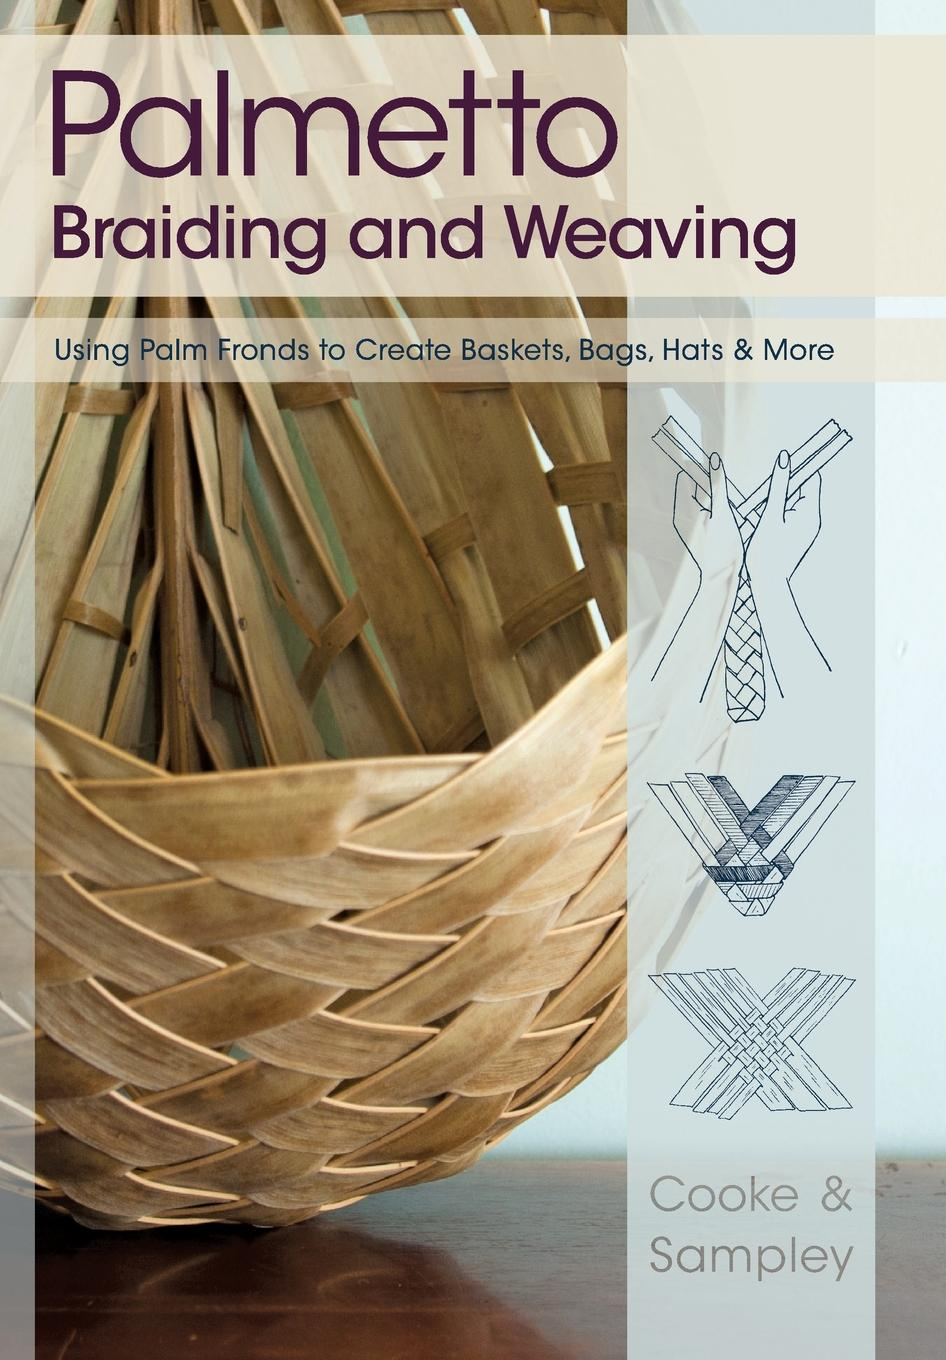 Viva Cooke, Julia Sampley Palmetto Braiding and Weaving. Using Palm Fronds to Create Baskets, Bags, Hats & More cute weaving and color block design tote bag for women